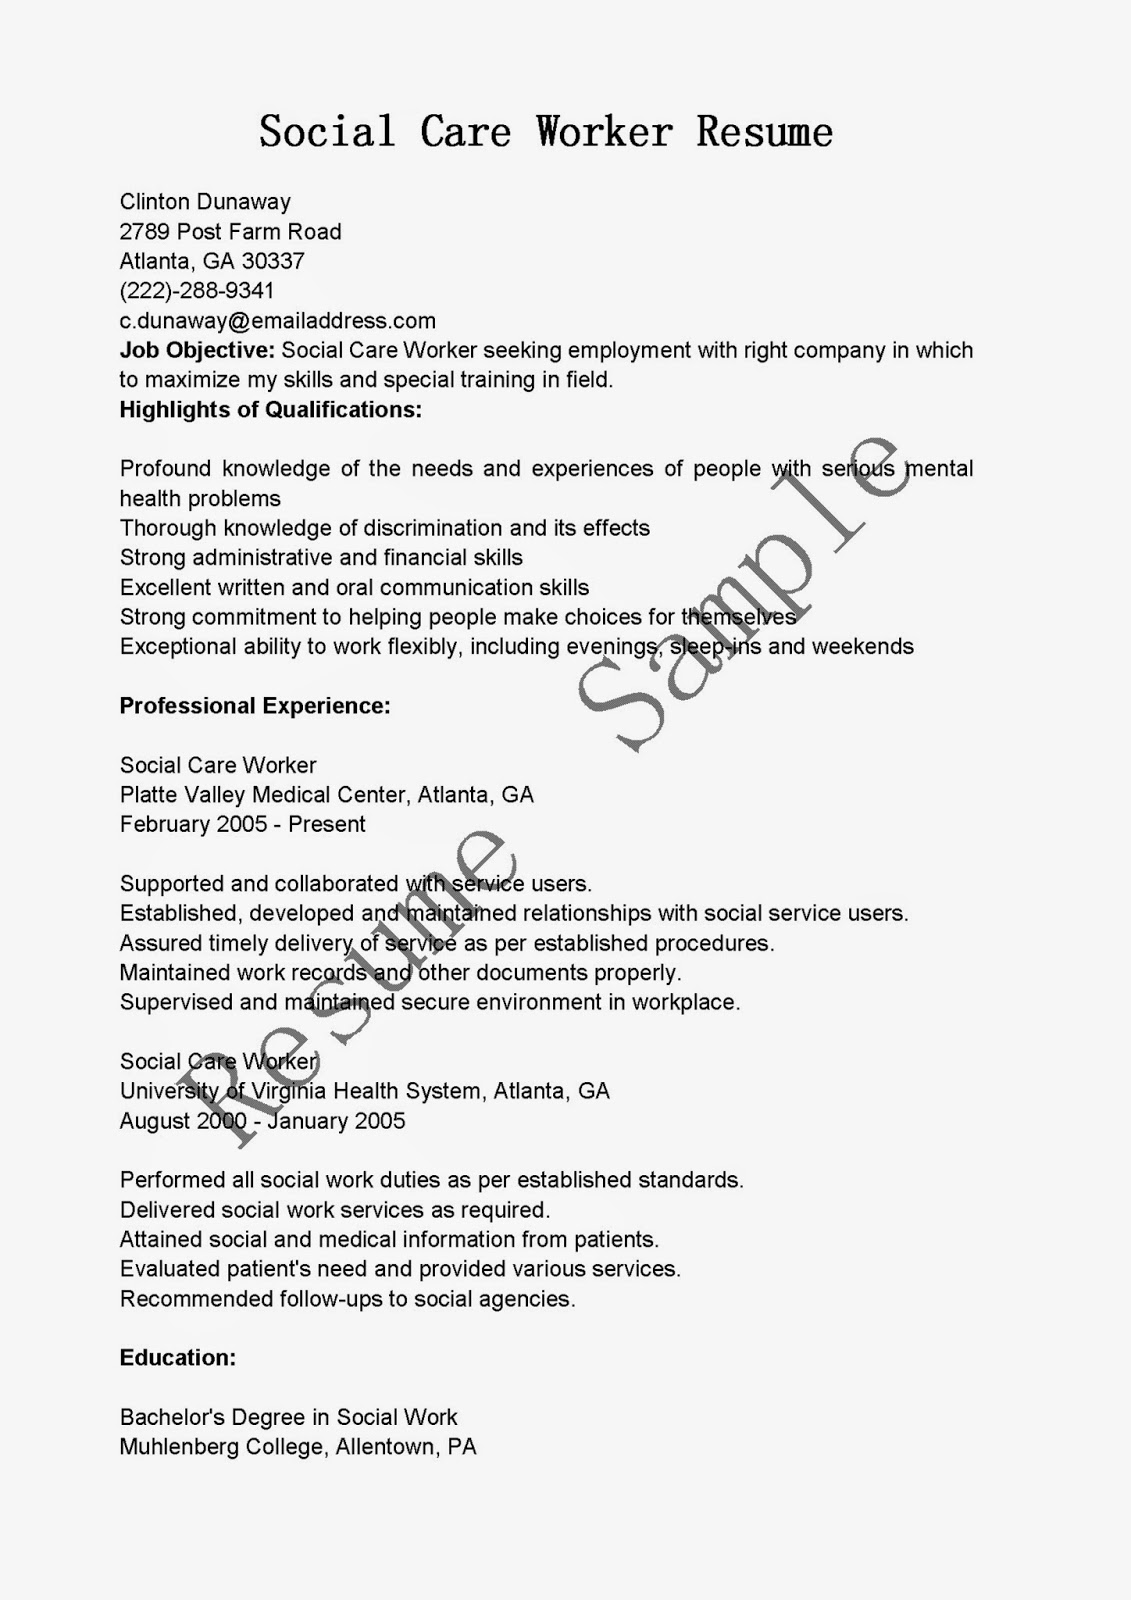 social worker resume sample msw grad school resume cover letter social care worker resume social worker